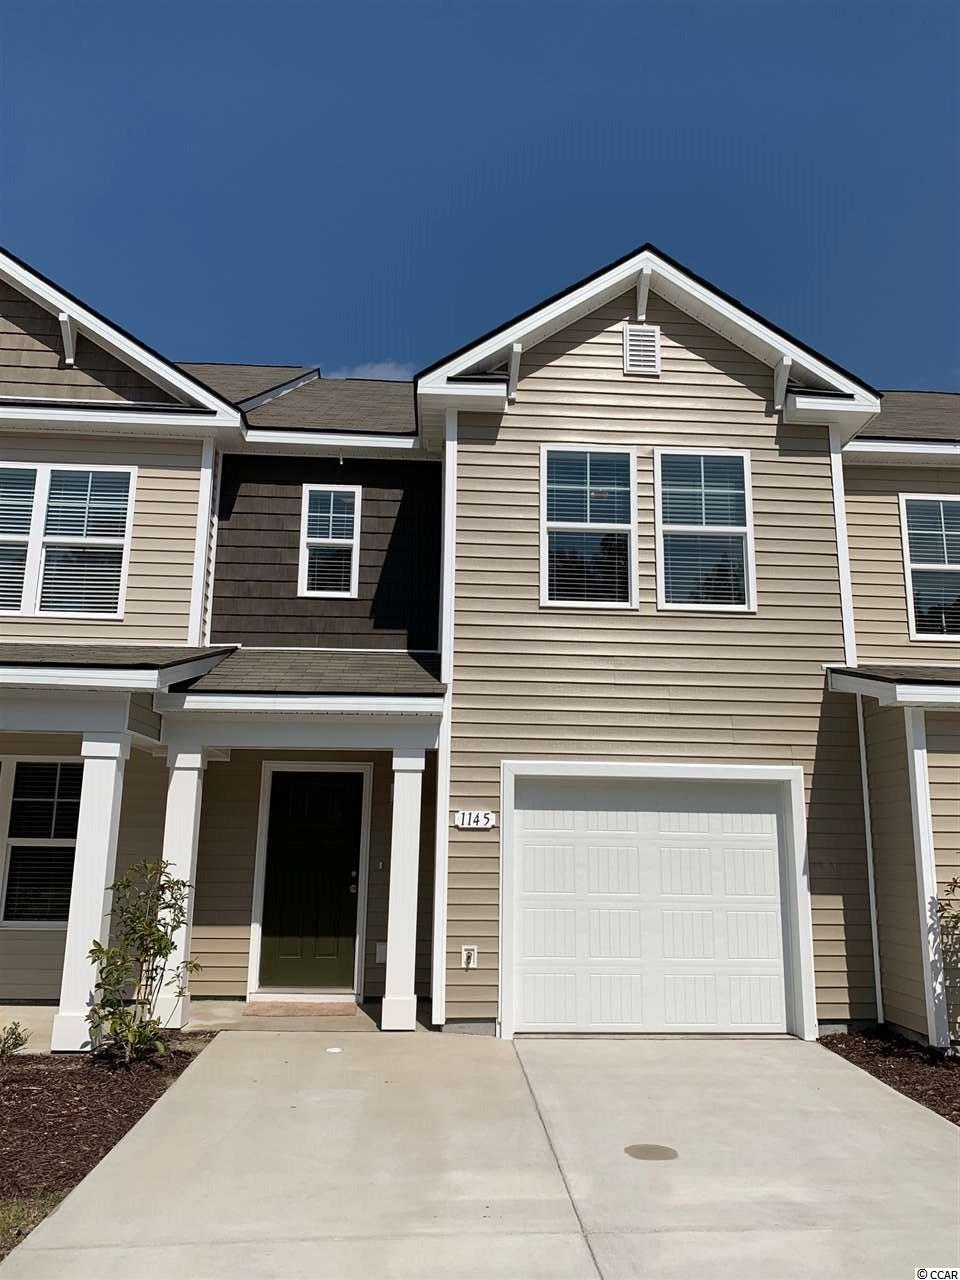 Great open floor plan great for entertaining. Stainless steel appliances. Close to shopping, great restaurants, and Coastal Carolina University. Just 20 minutes from the beach. Pictures are of a similar Durham and are for representation only. Square footage is estimated and buyer is responsible for verification.